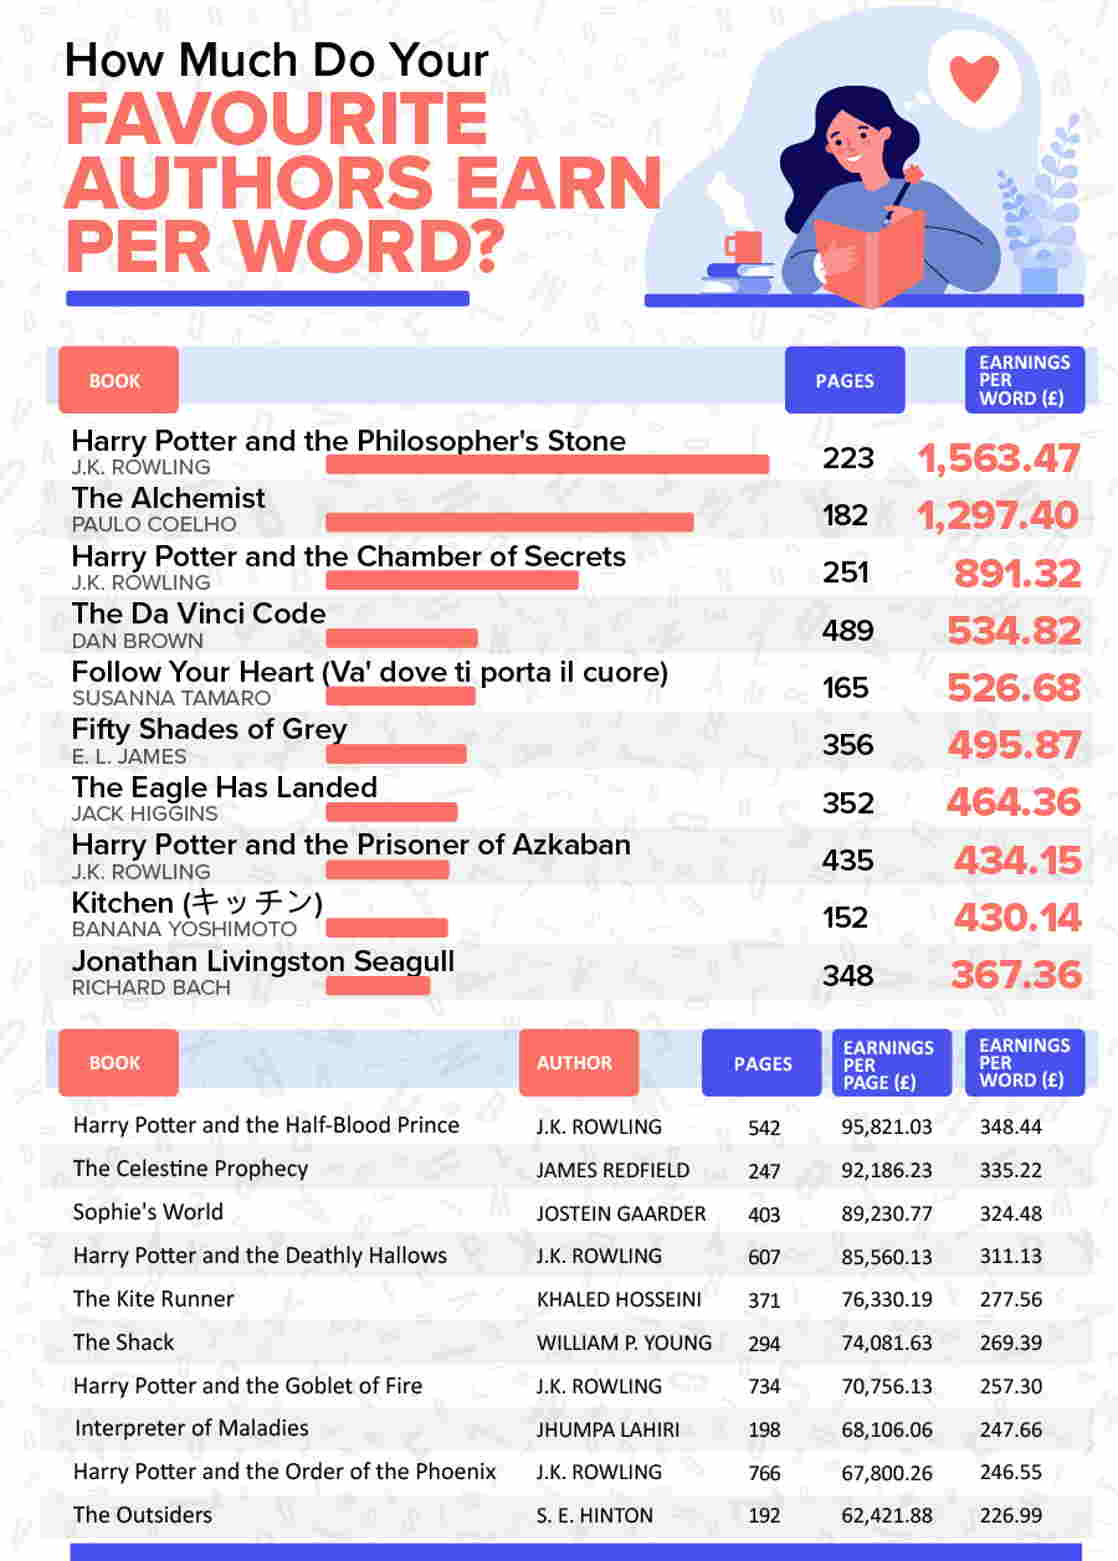 this is how much the best-selling authors earn per word